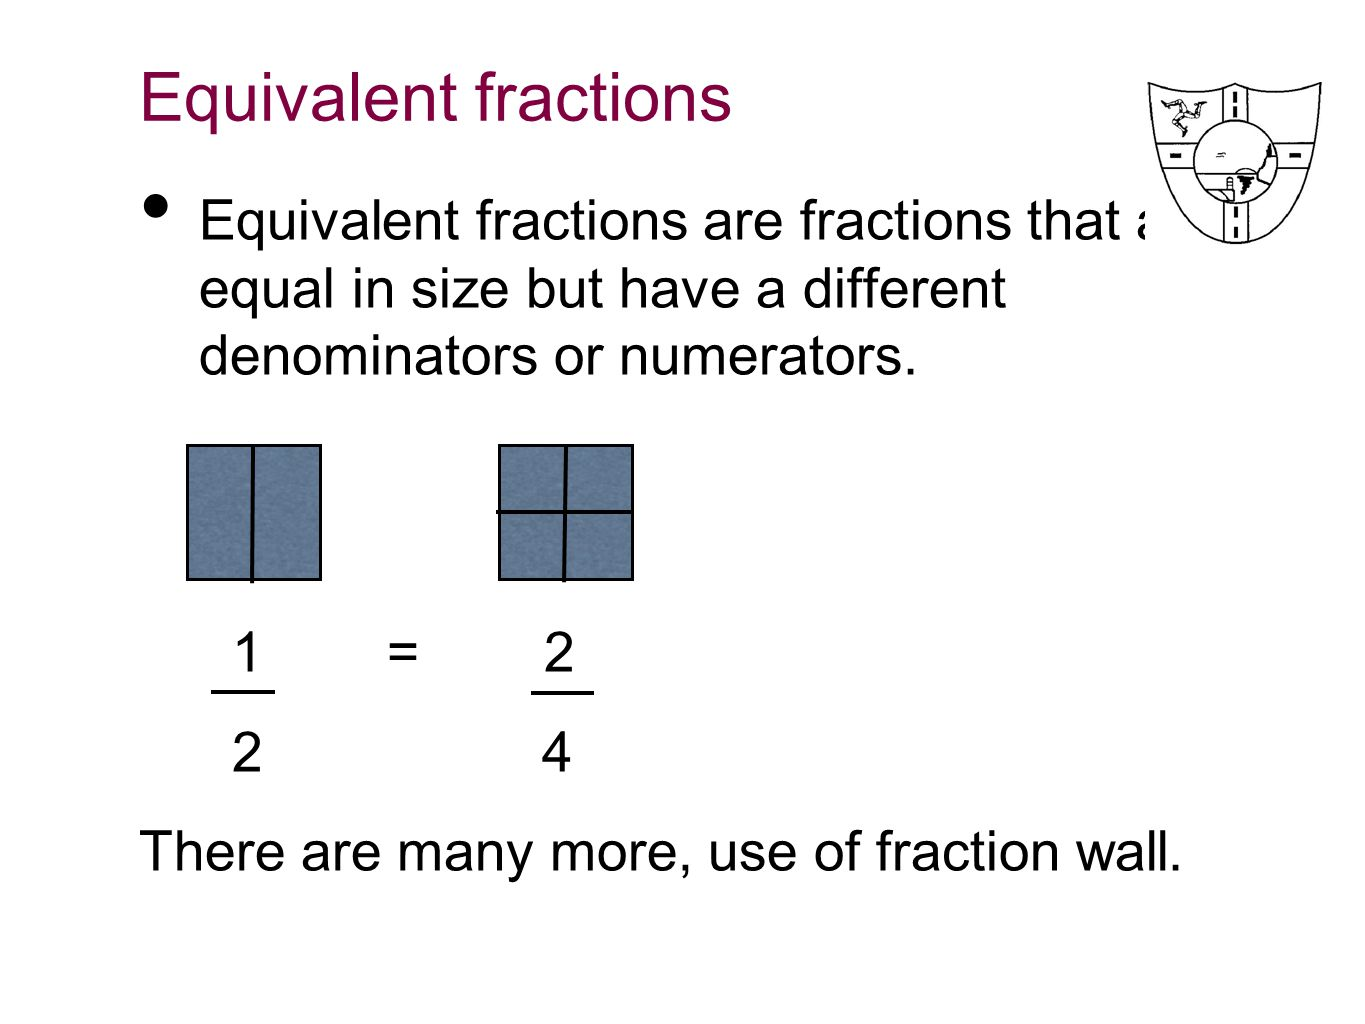 Equivalent fractions to 2/4